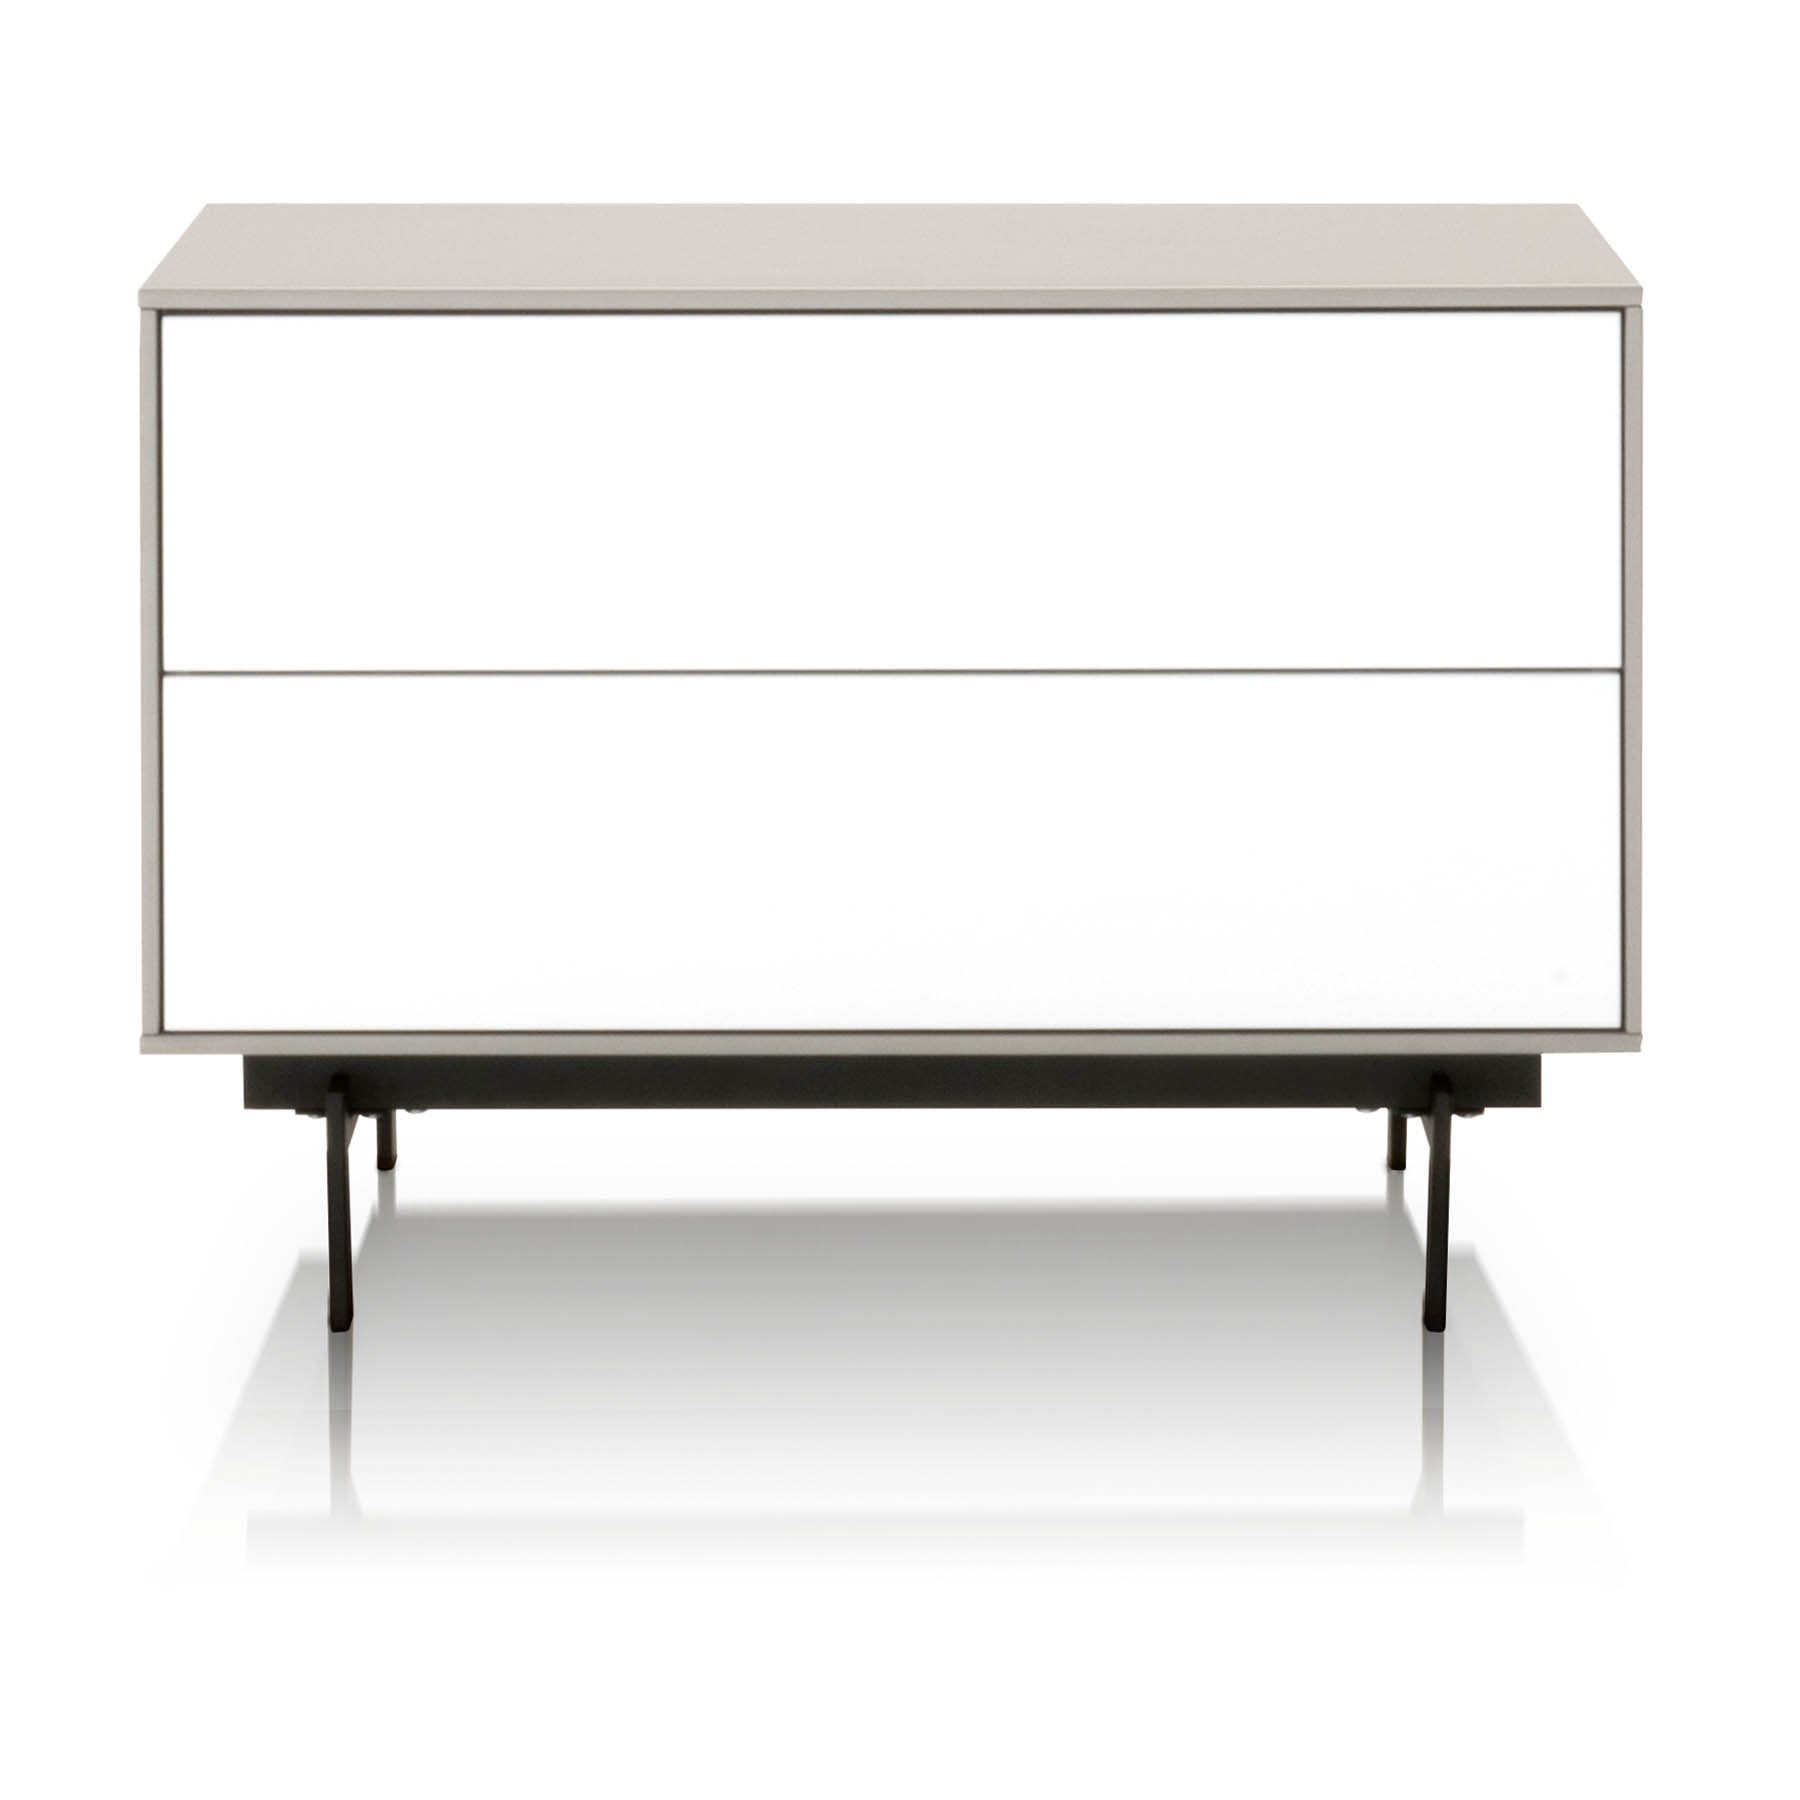 Symphony 2-Drawer Modular TV Stand